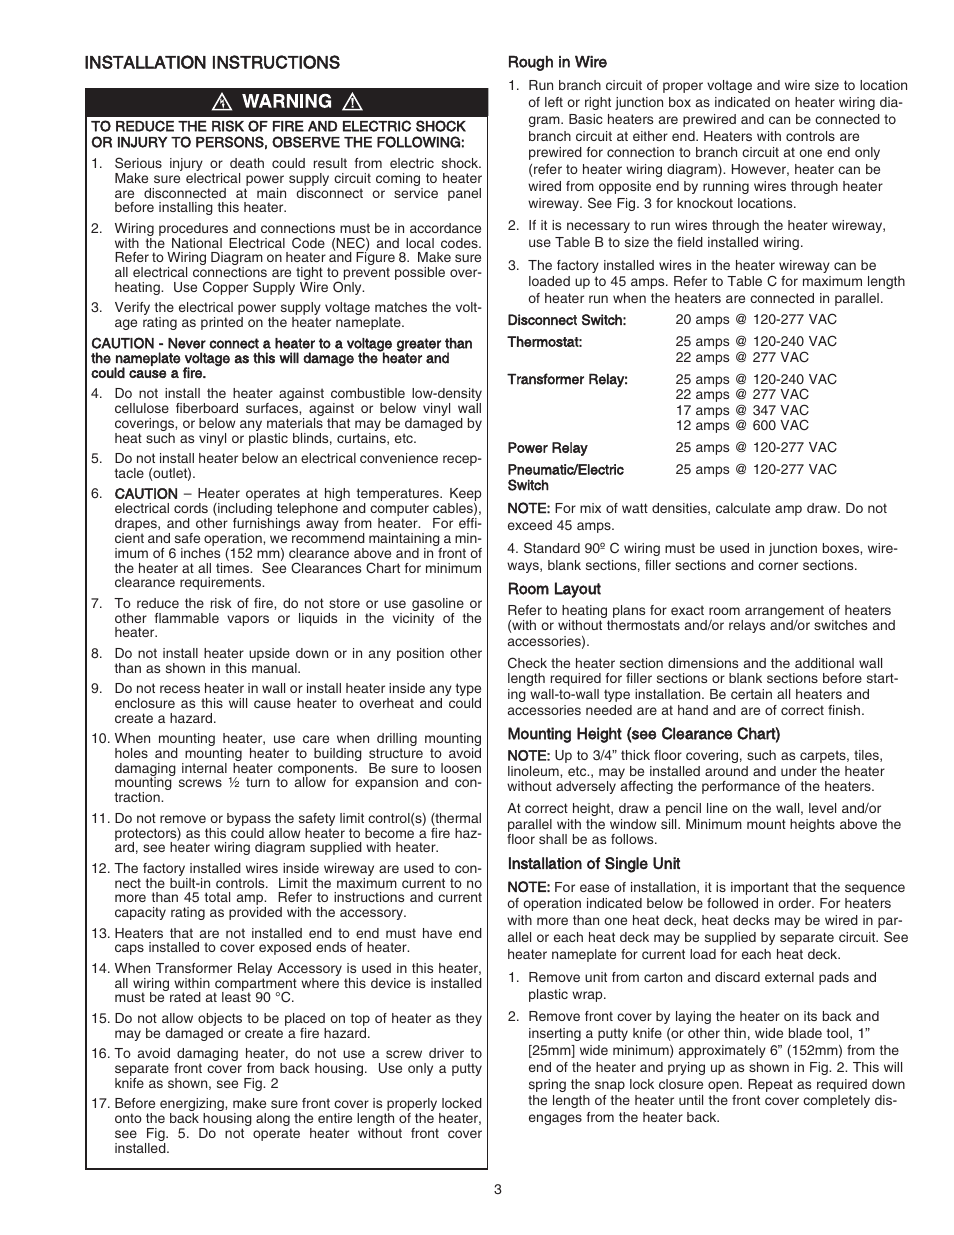 Qmark Dbsl Series Aluminum Convection Heaters User Manual Page 3 Heater Wiring Diagram 18